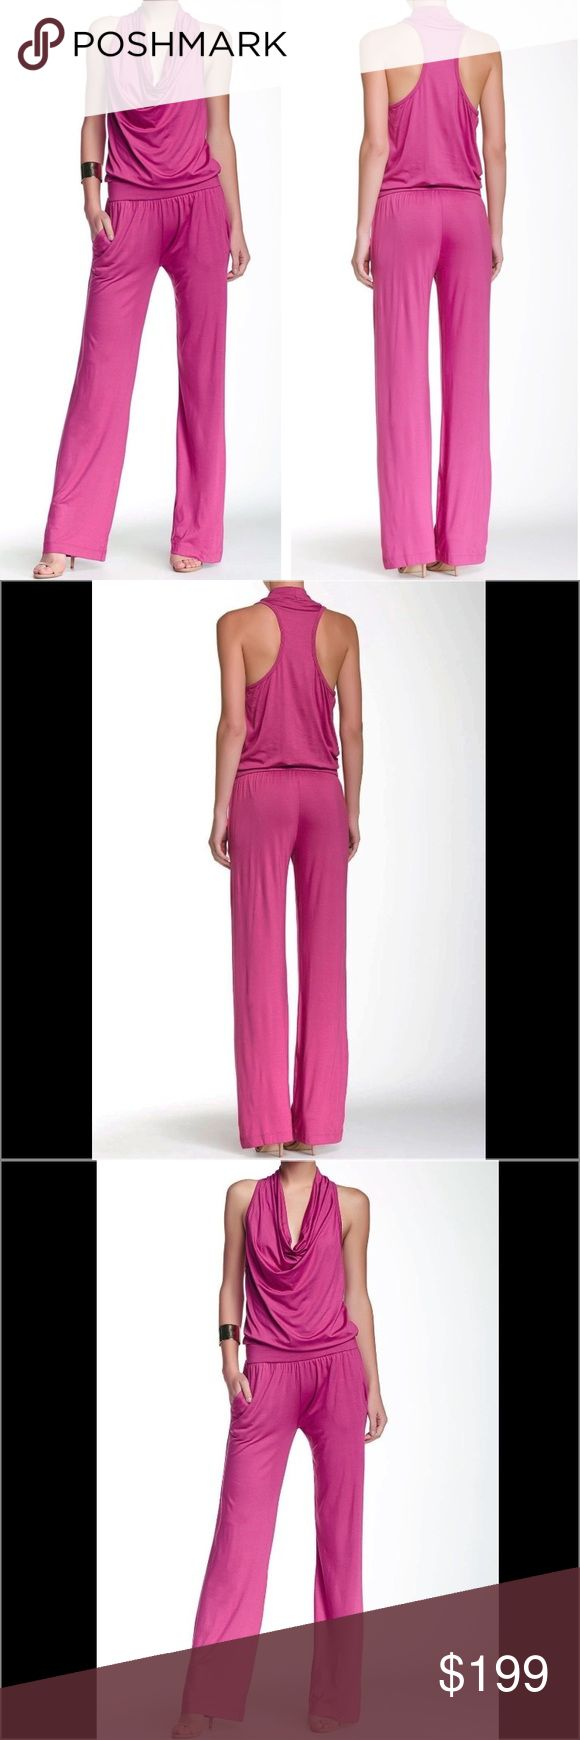 "Trina Turk Raissa Sleeveless Cowl Neck Jumpsuit L Trina Turk Purple Jumpsuit  Size: Large Compare at $228 •Cowl neck •Sleeveless •Draped bodice •2 on seam side pockets •Approx. 40"" bust, 34"" inseam •Made in USA •95% viscose, 5% elastane •Dry clean •Imported Trina Turk Pants Jumpsuits & Rompers"